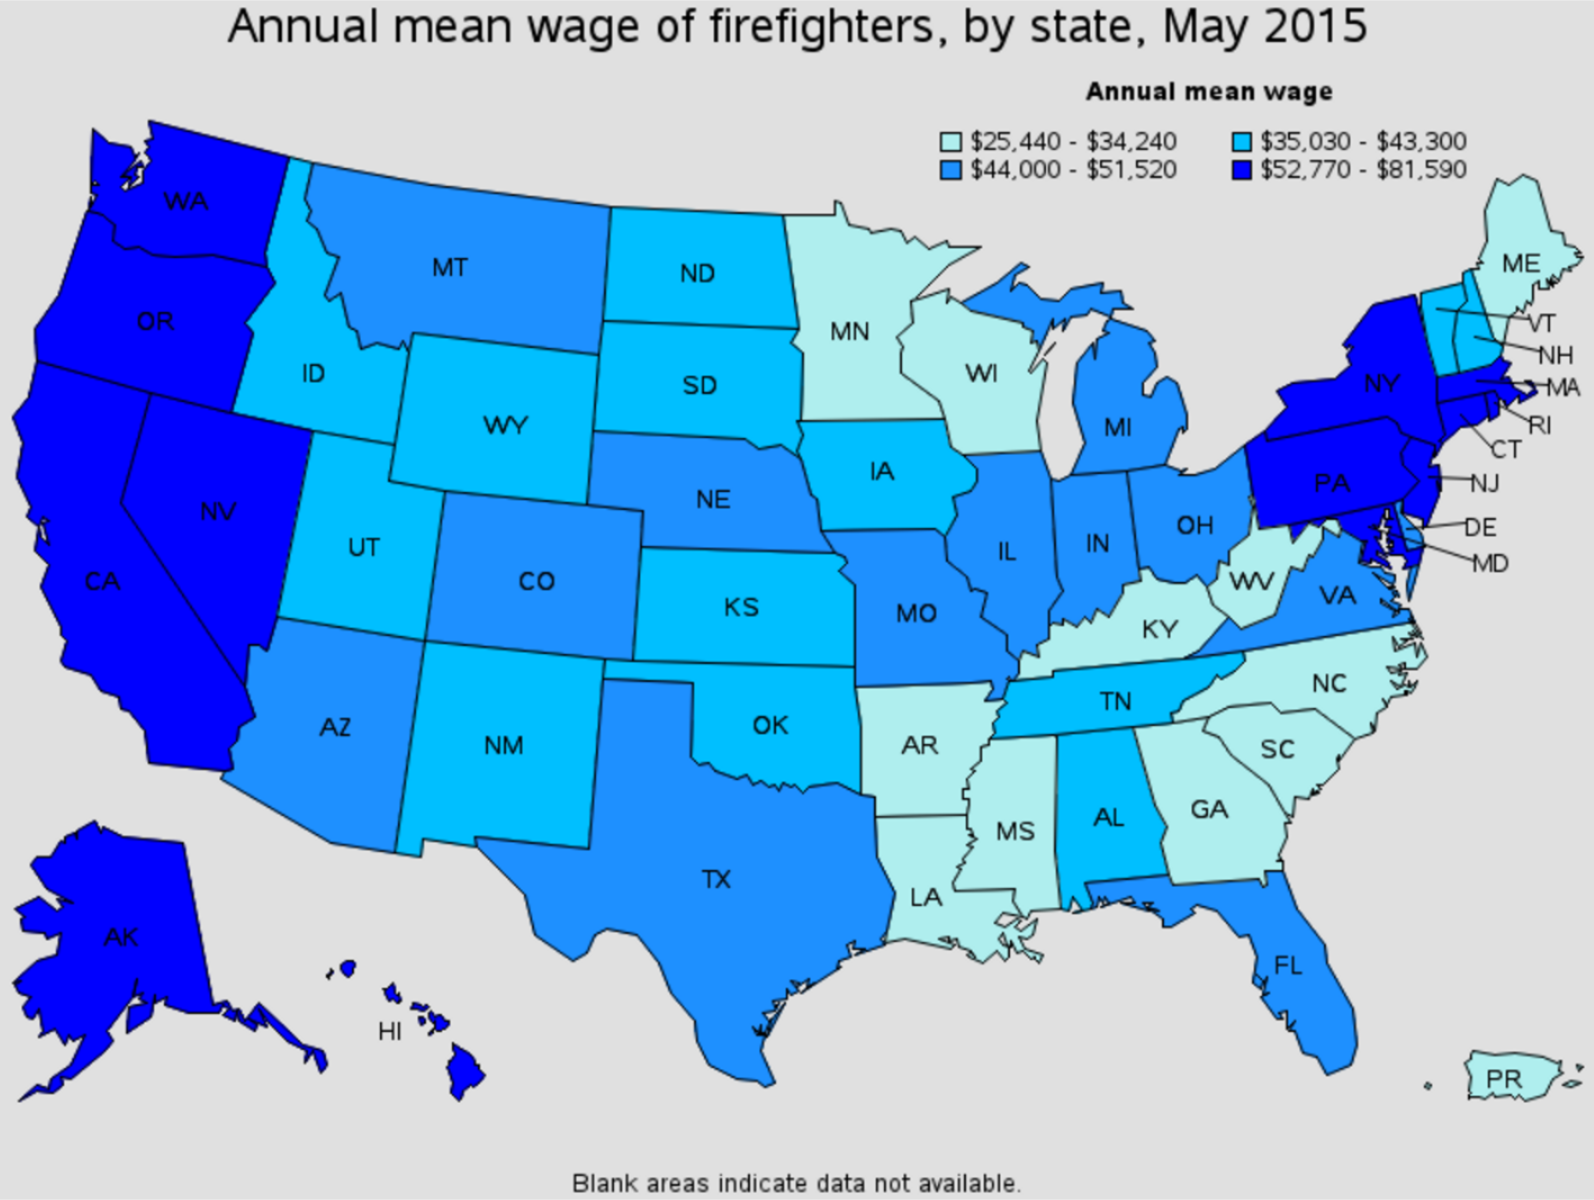 firefighter average salary by state Young Harris Georgia